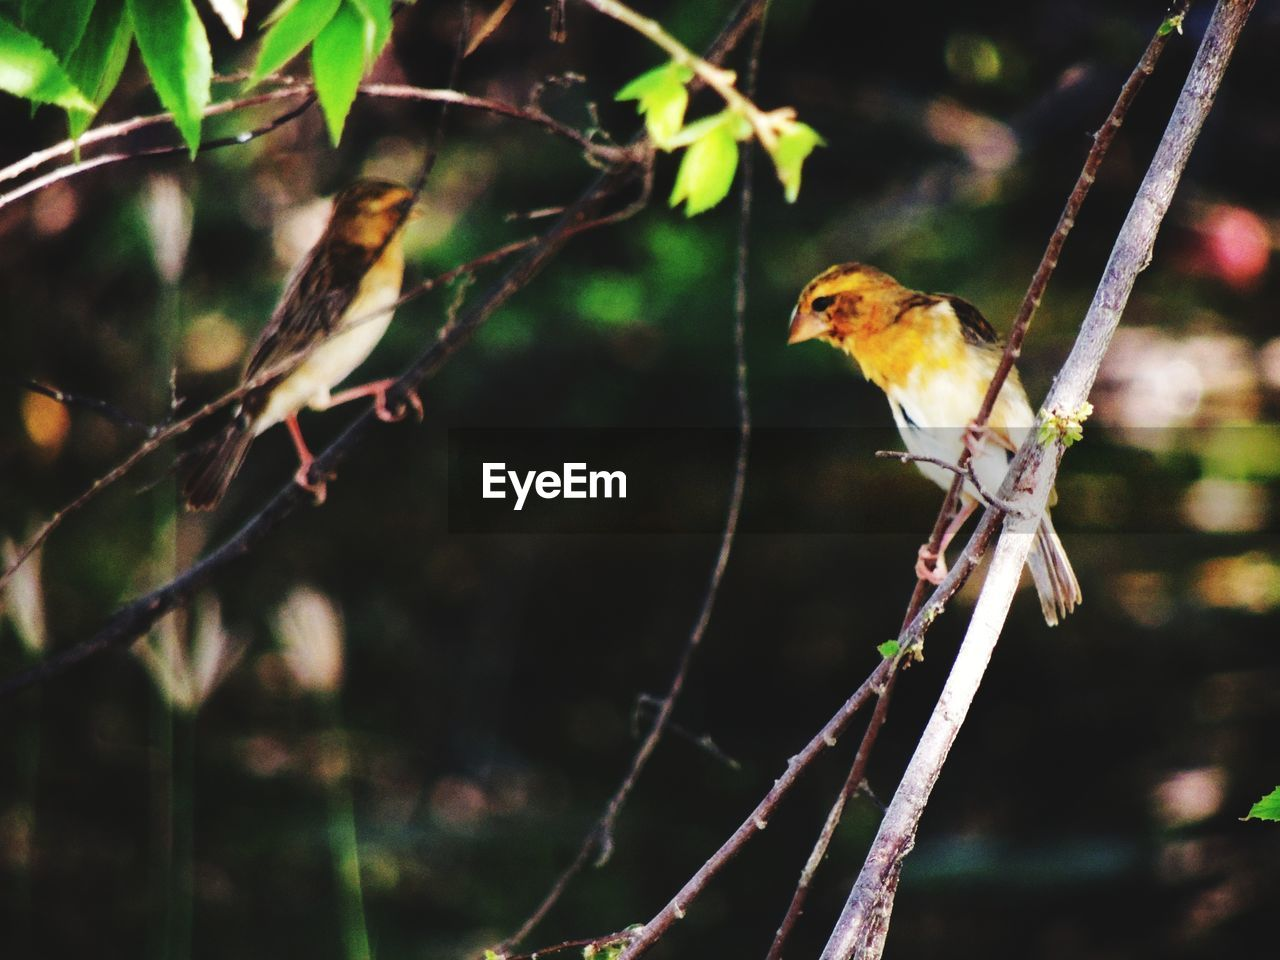 animal themes, animal wildlife, animals in the wild, bird, animal, vertebrate, one animal, tree, branch, focus on foreground, plant, perching, nature, no people, day, outdoors, close-up, songbird, looking, selective focus